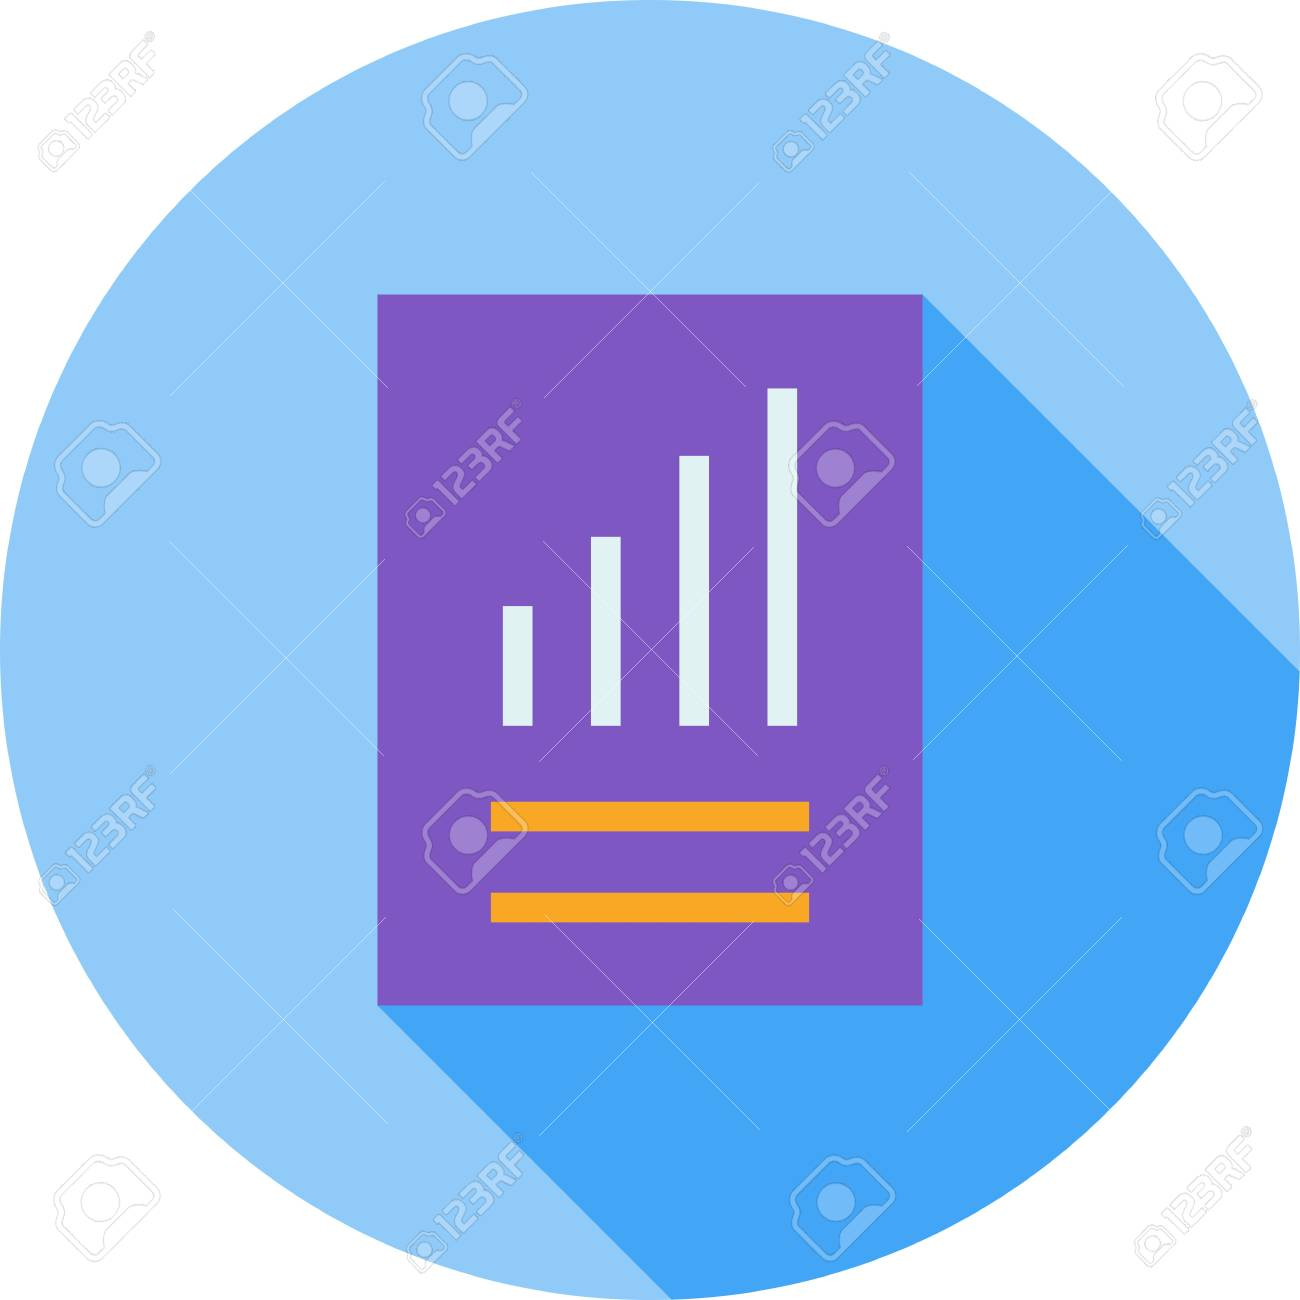 Documents, report, file icon vector image  Can also be used for